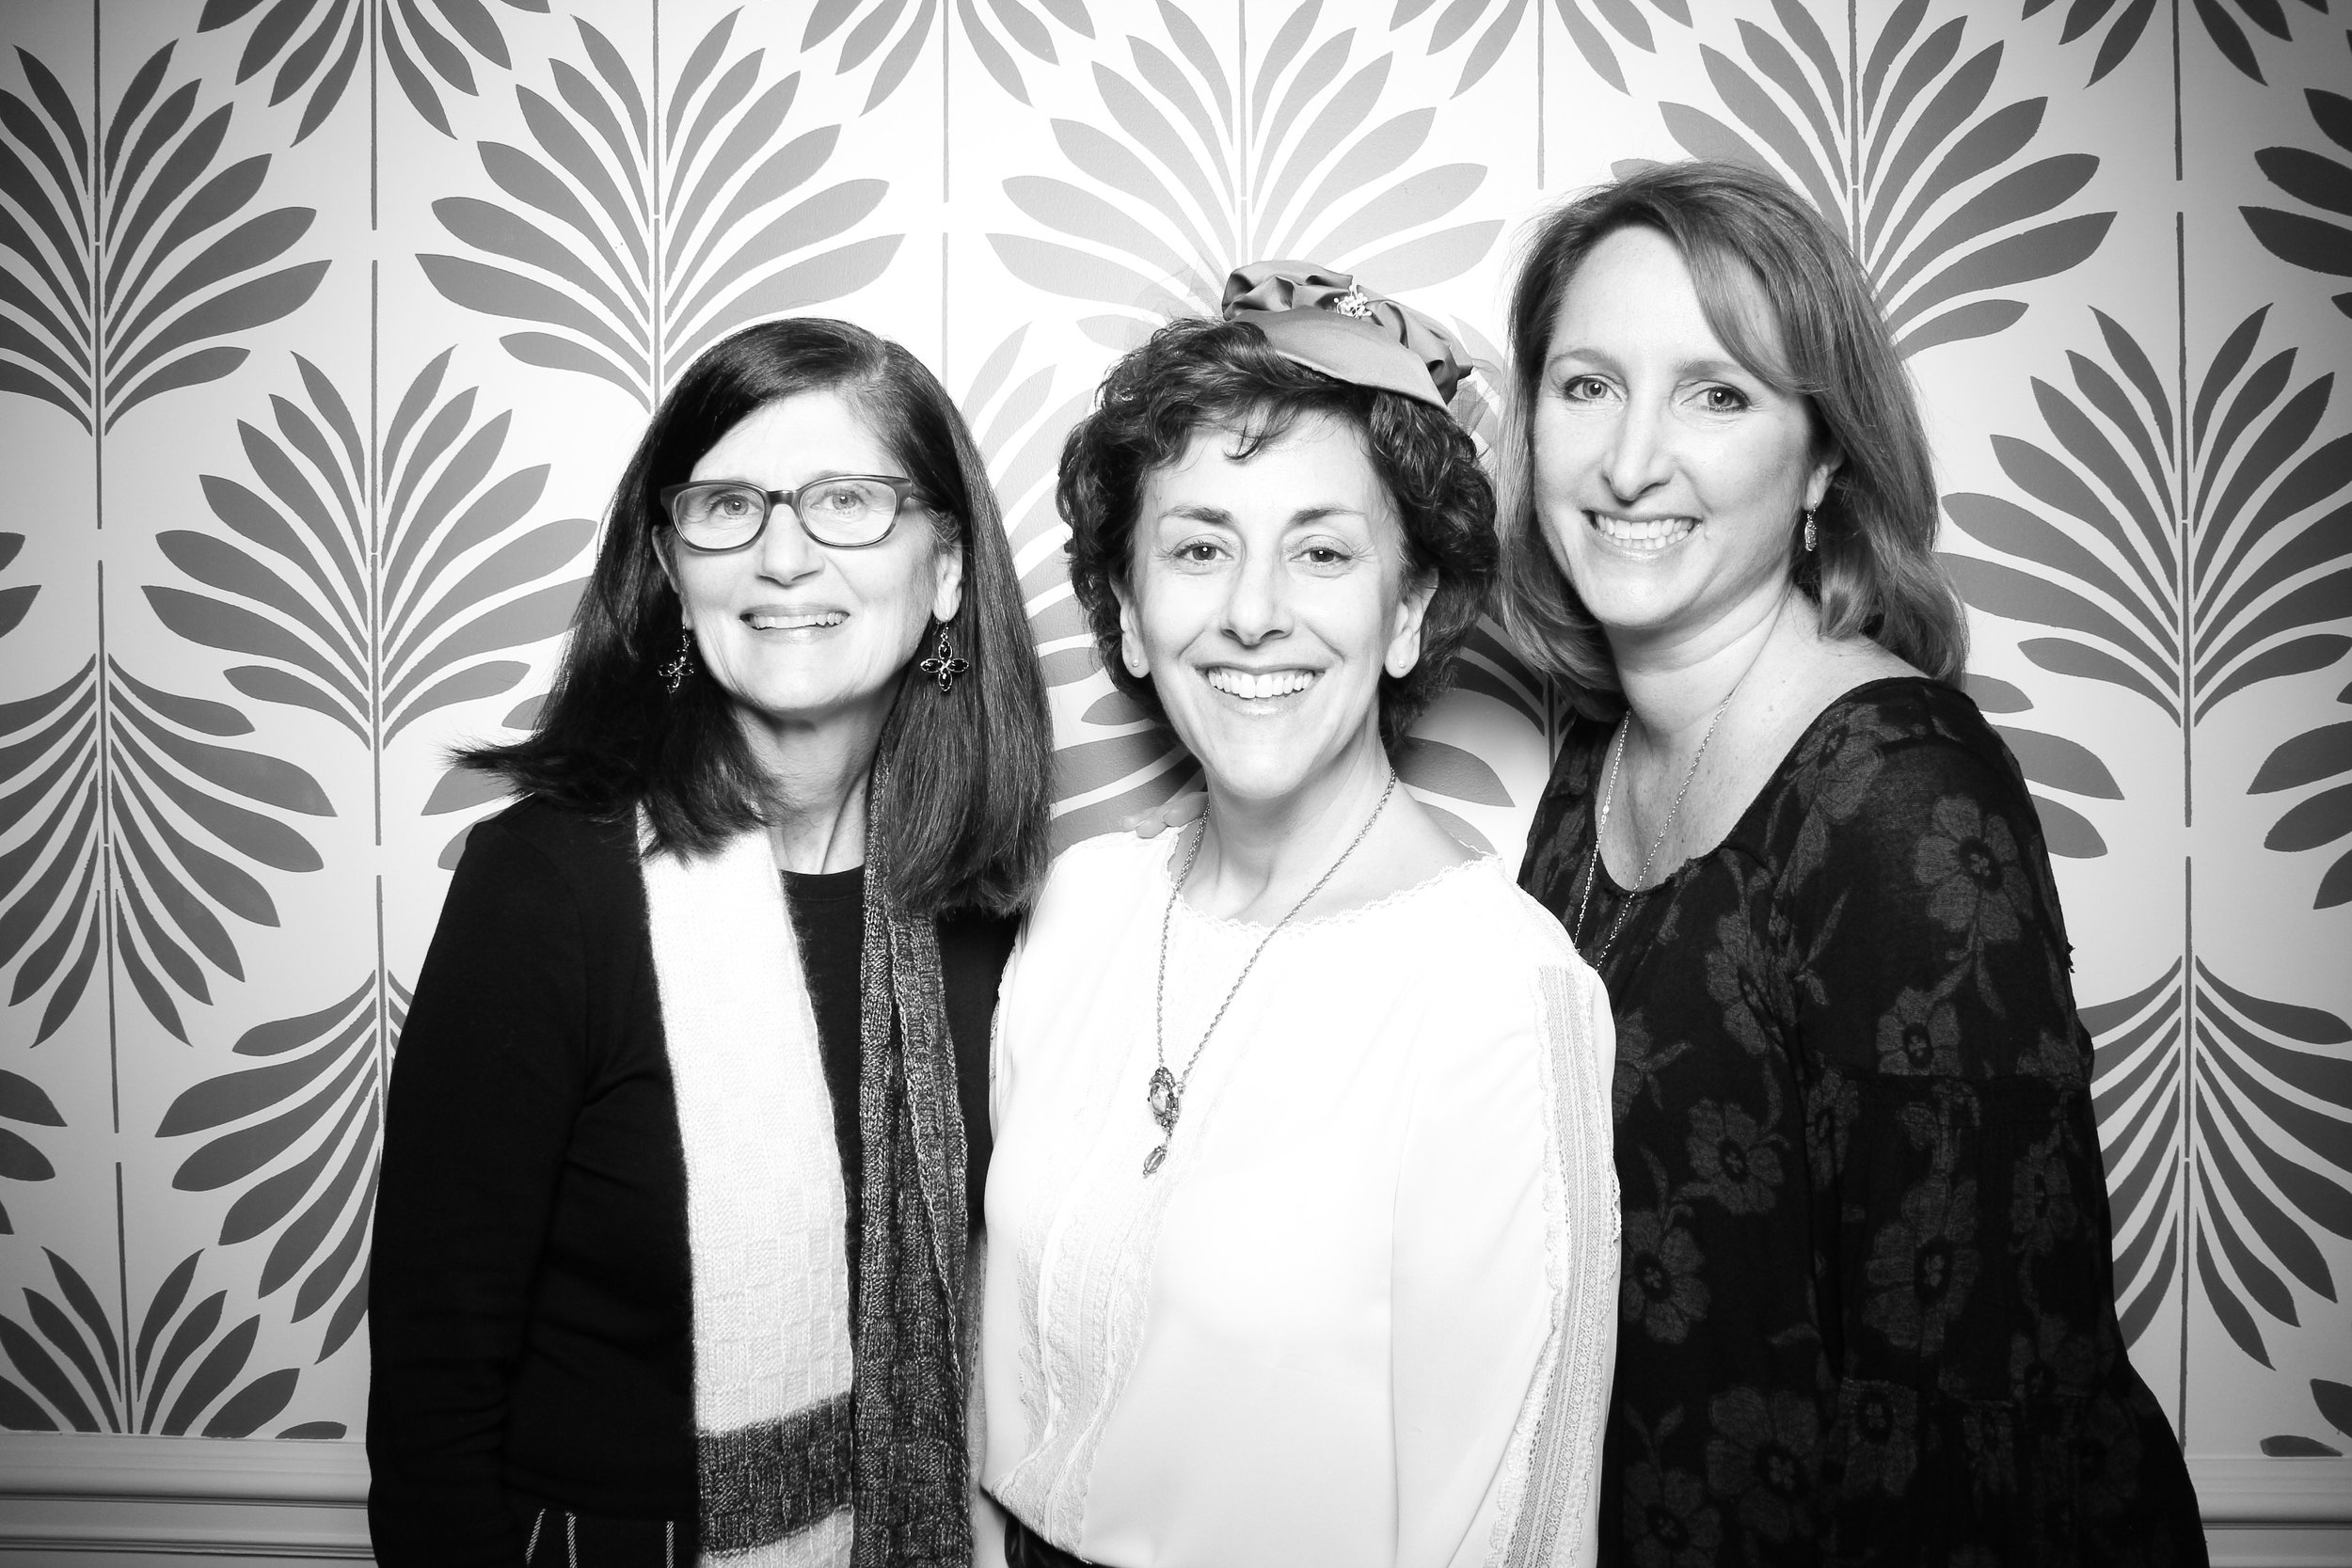 LaGrange_Country_Club_Photo_Booth_Wedding_Reception__19.jpg